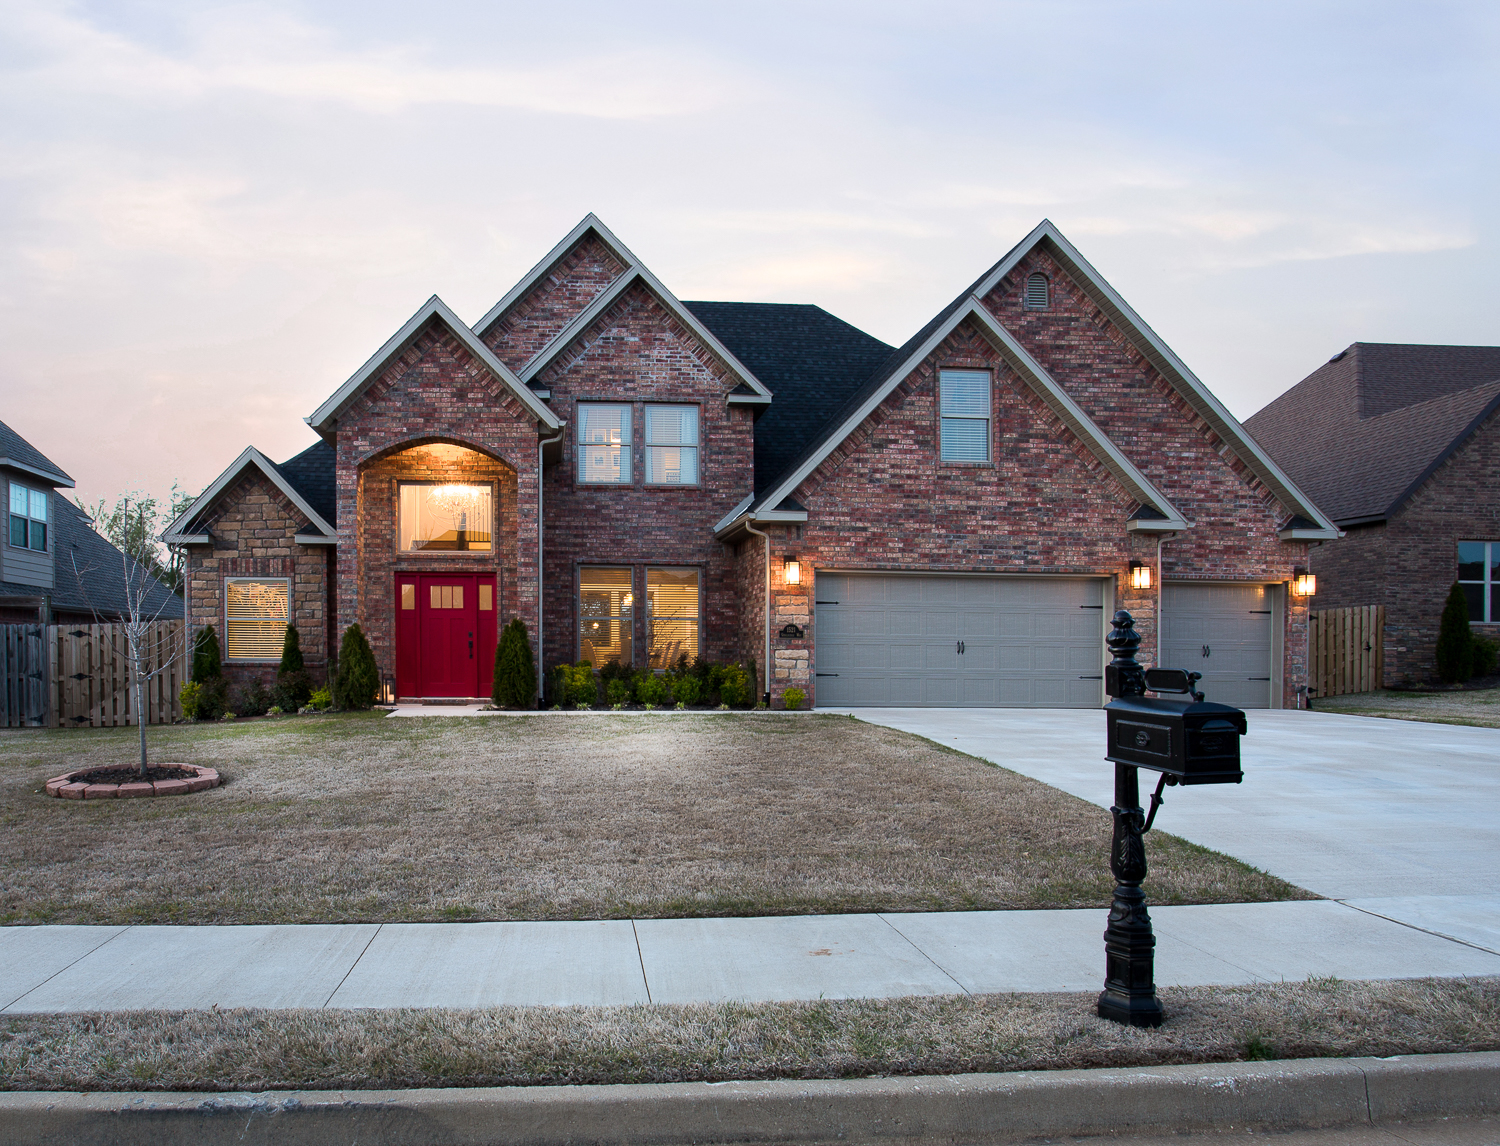 Twilight real estate photo of home in Quailridge community of Be